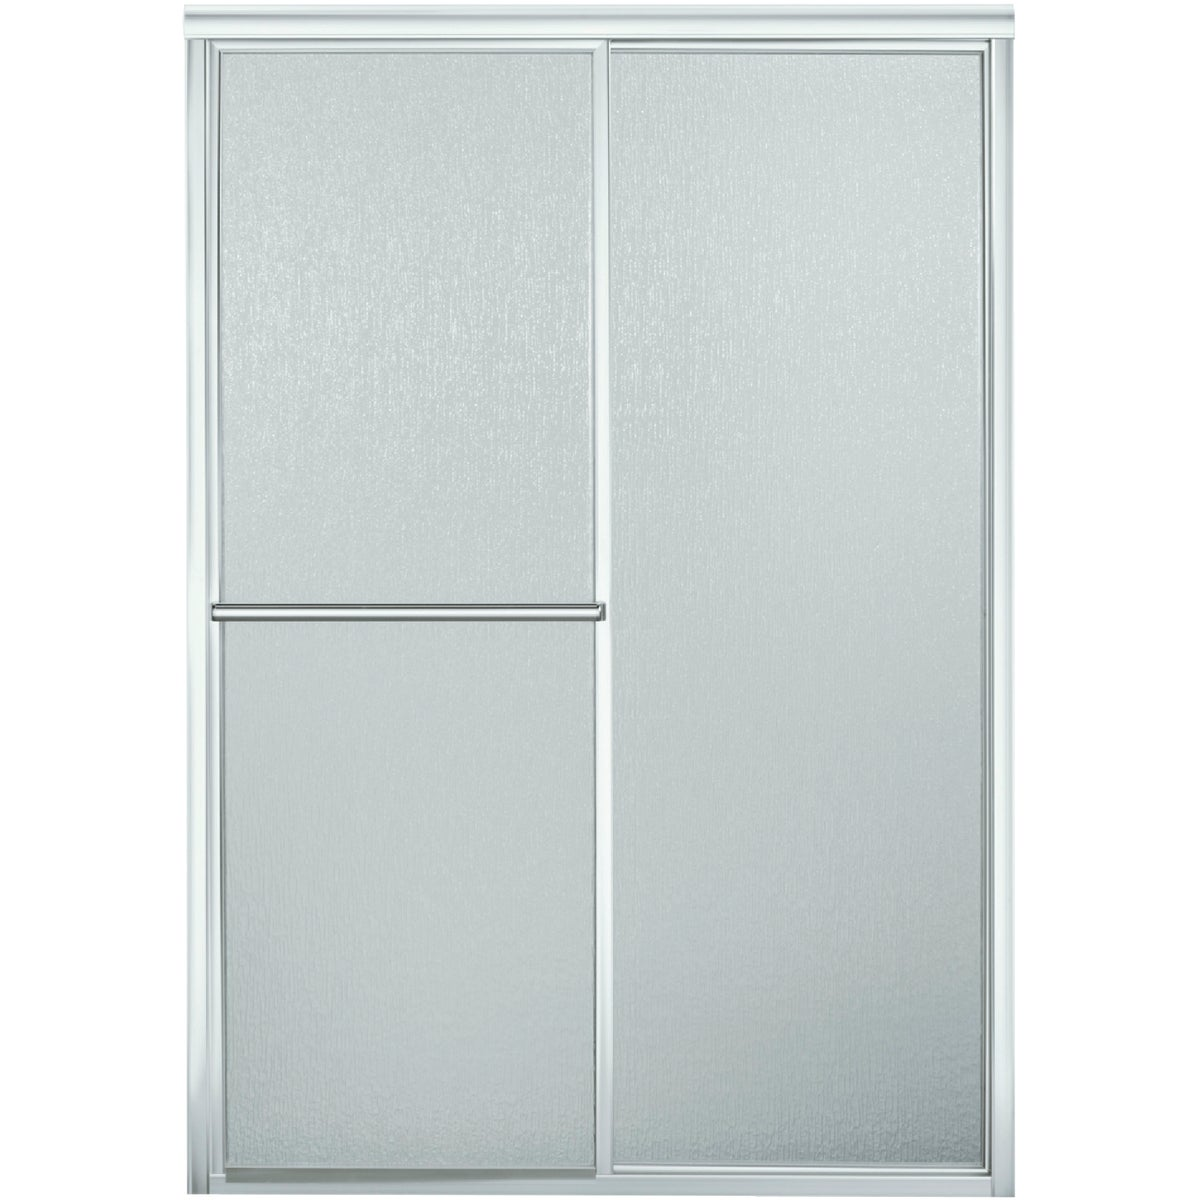 41-46 SLV SHOWER DOOR - SP5965-46S-GO6 by Sterling Doors